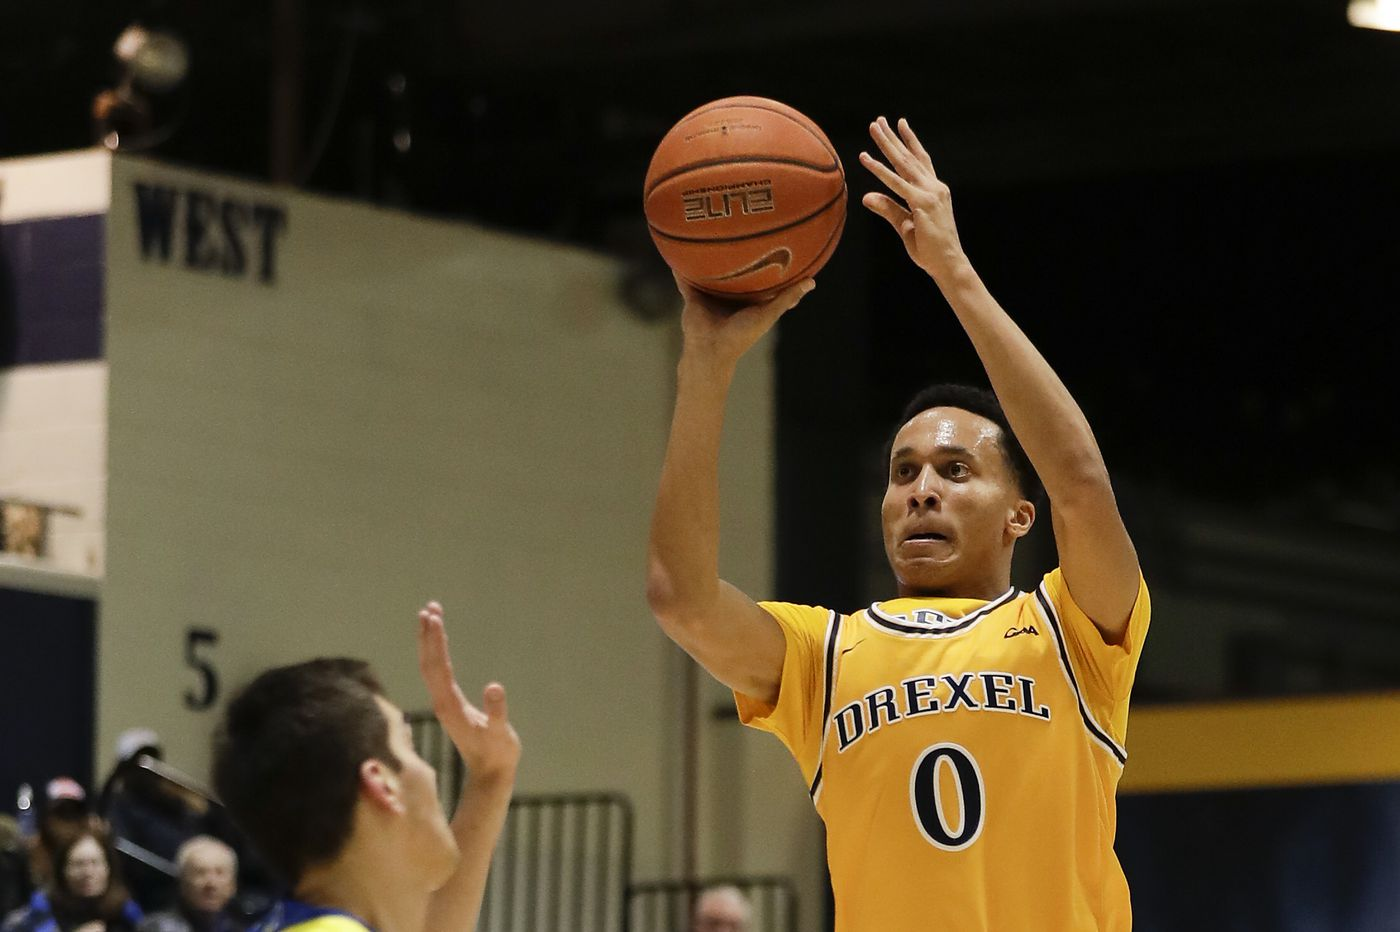 Towson's too much for Drexel in 89-73 victory